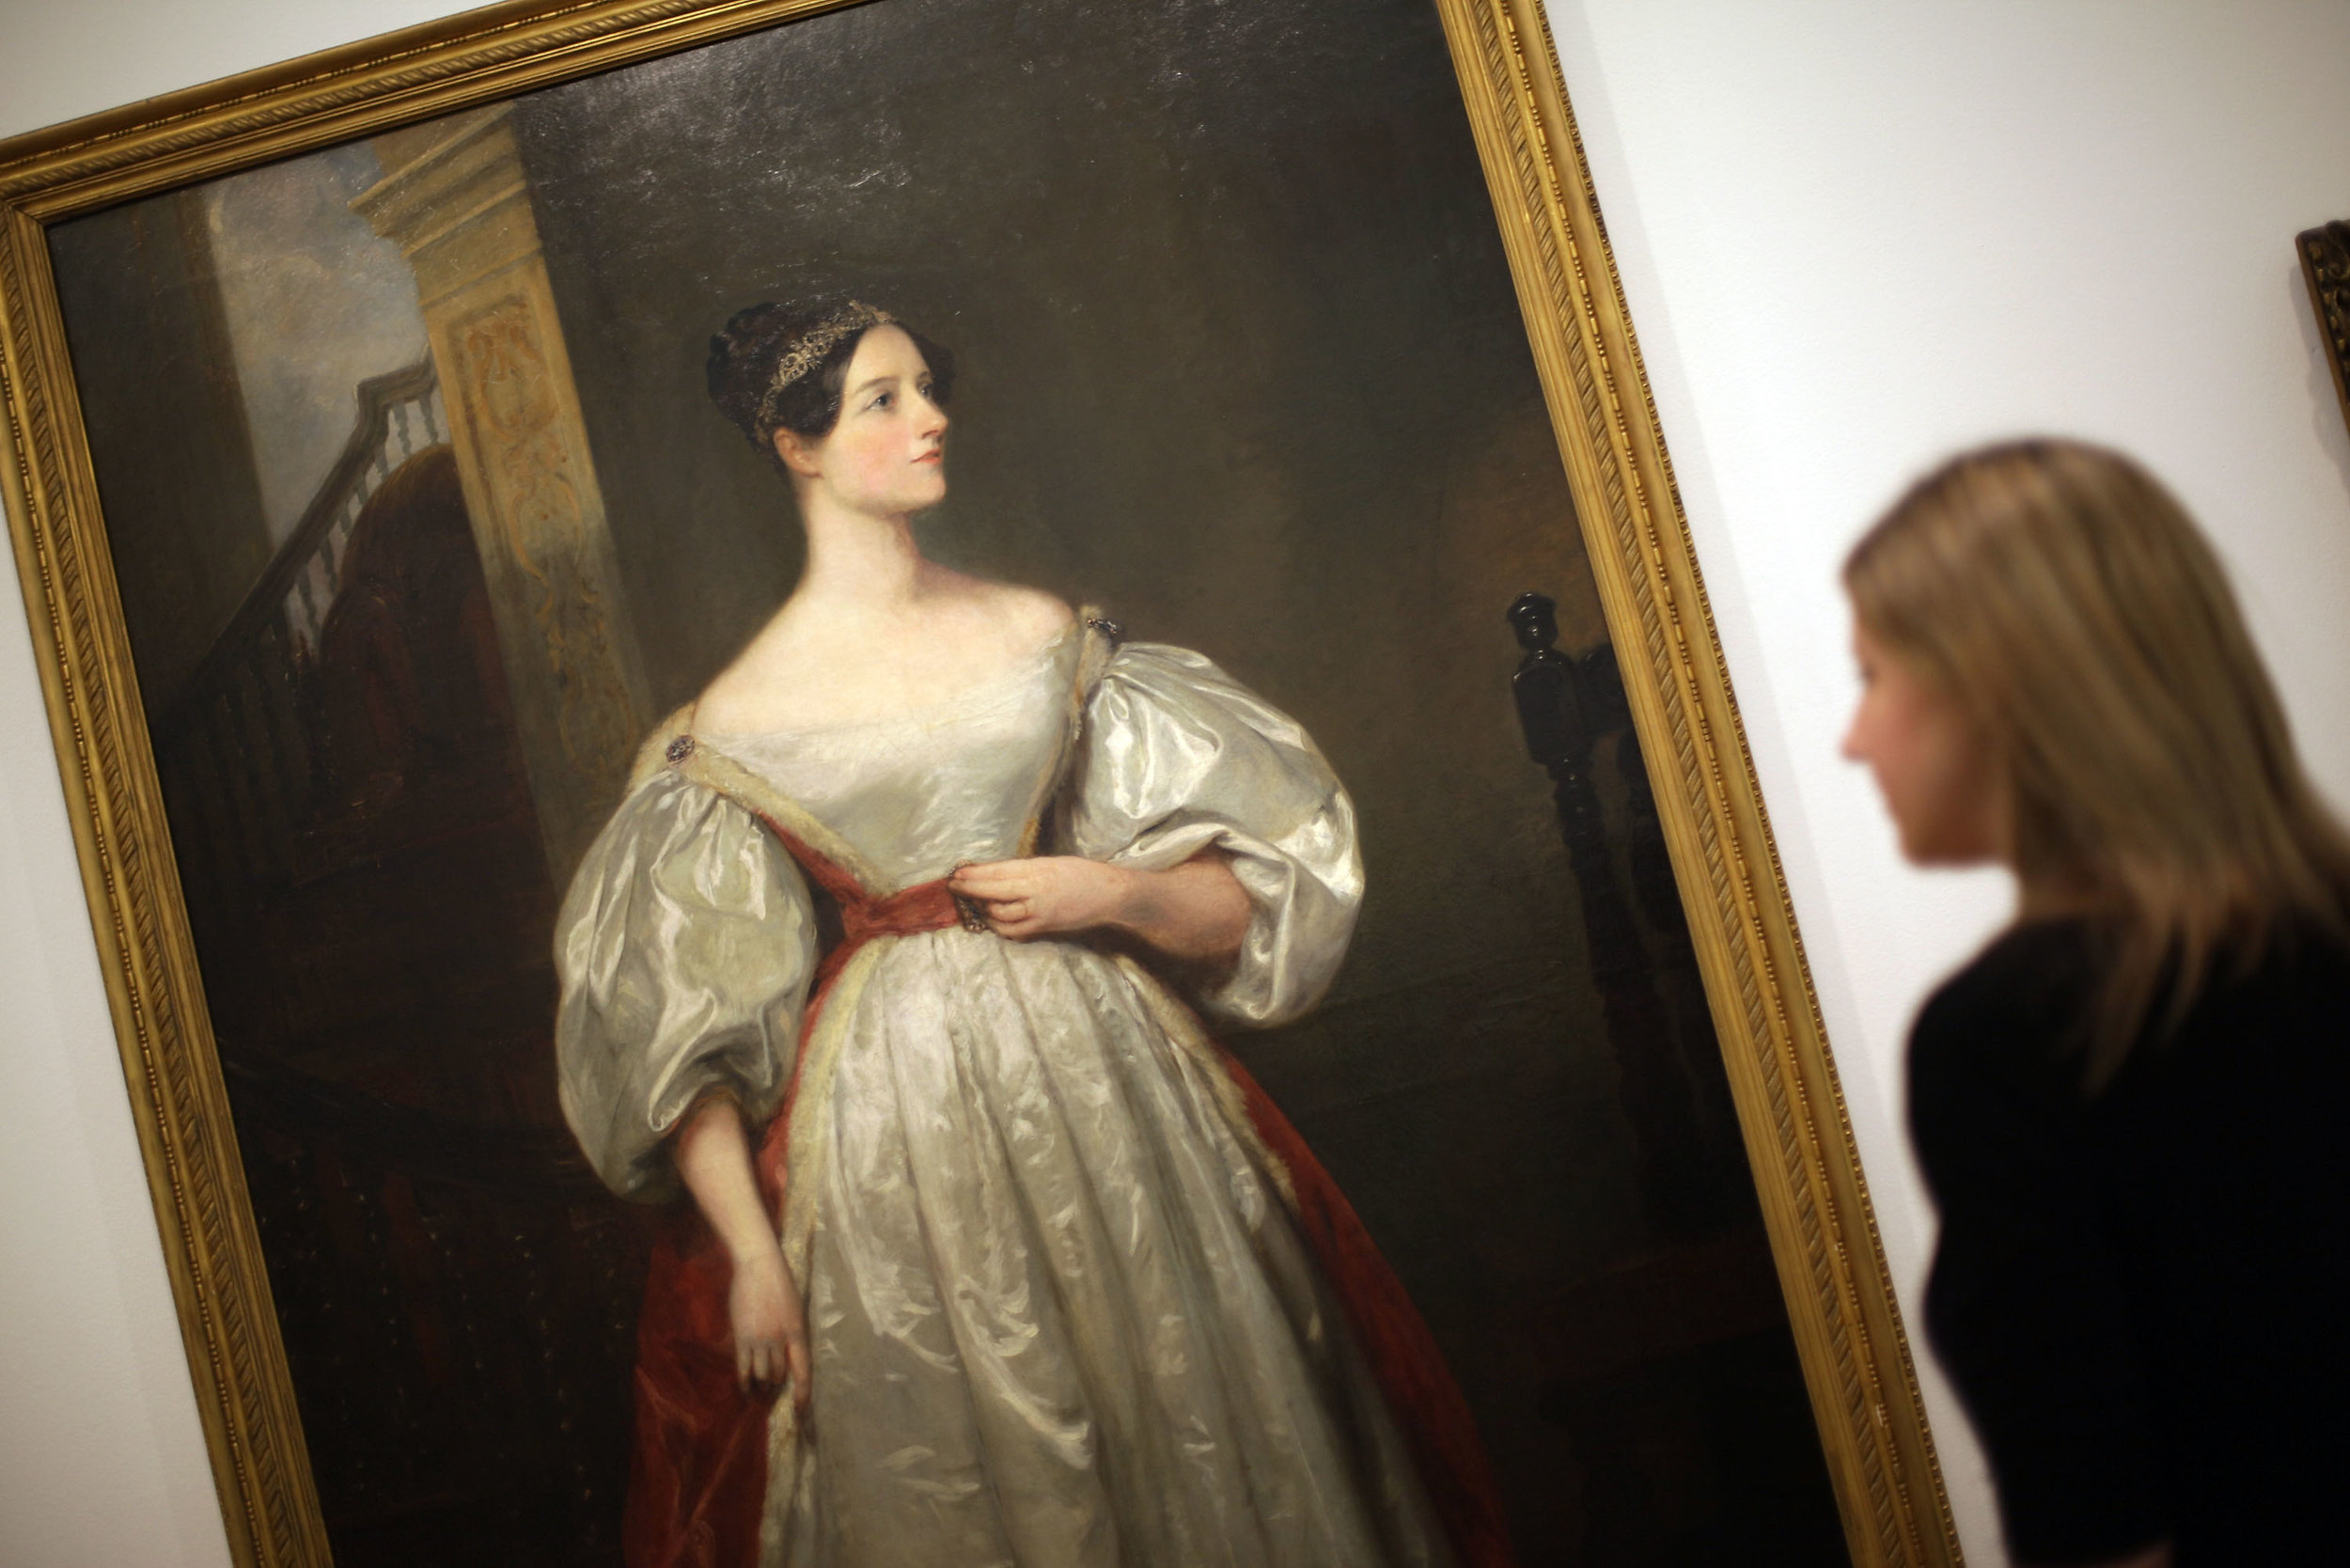 Ada Lovelace, the English mathematician known for her work on Charles Babbage's proposed mechanical general-purpose computer, the Analytical Engine. Photo by Peter Macdiarmid/Getty Images News / Getty Images